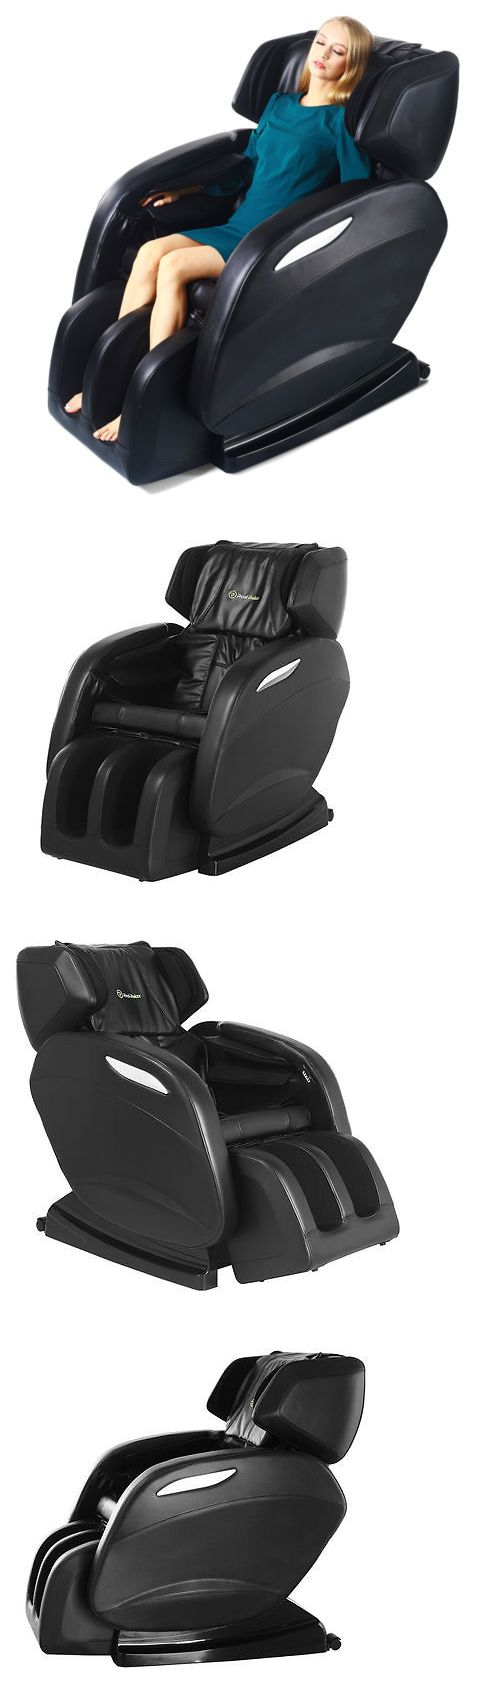 Massagers: Electric Full Body Shiatsu Massage Chair Recliner Zero Gravity With Music Player -> BUY IT NOW ONLY: $499 on eBay!